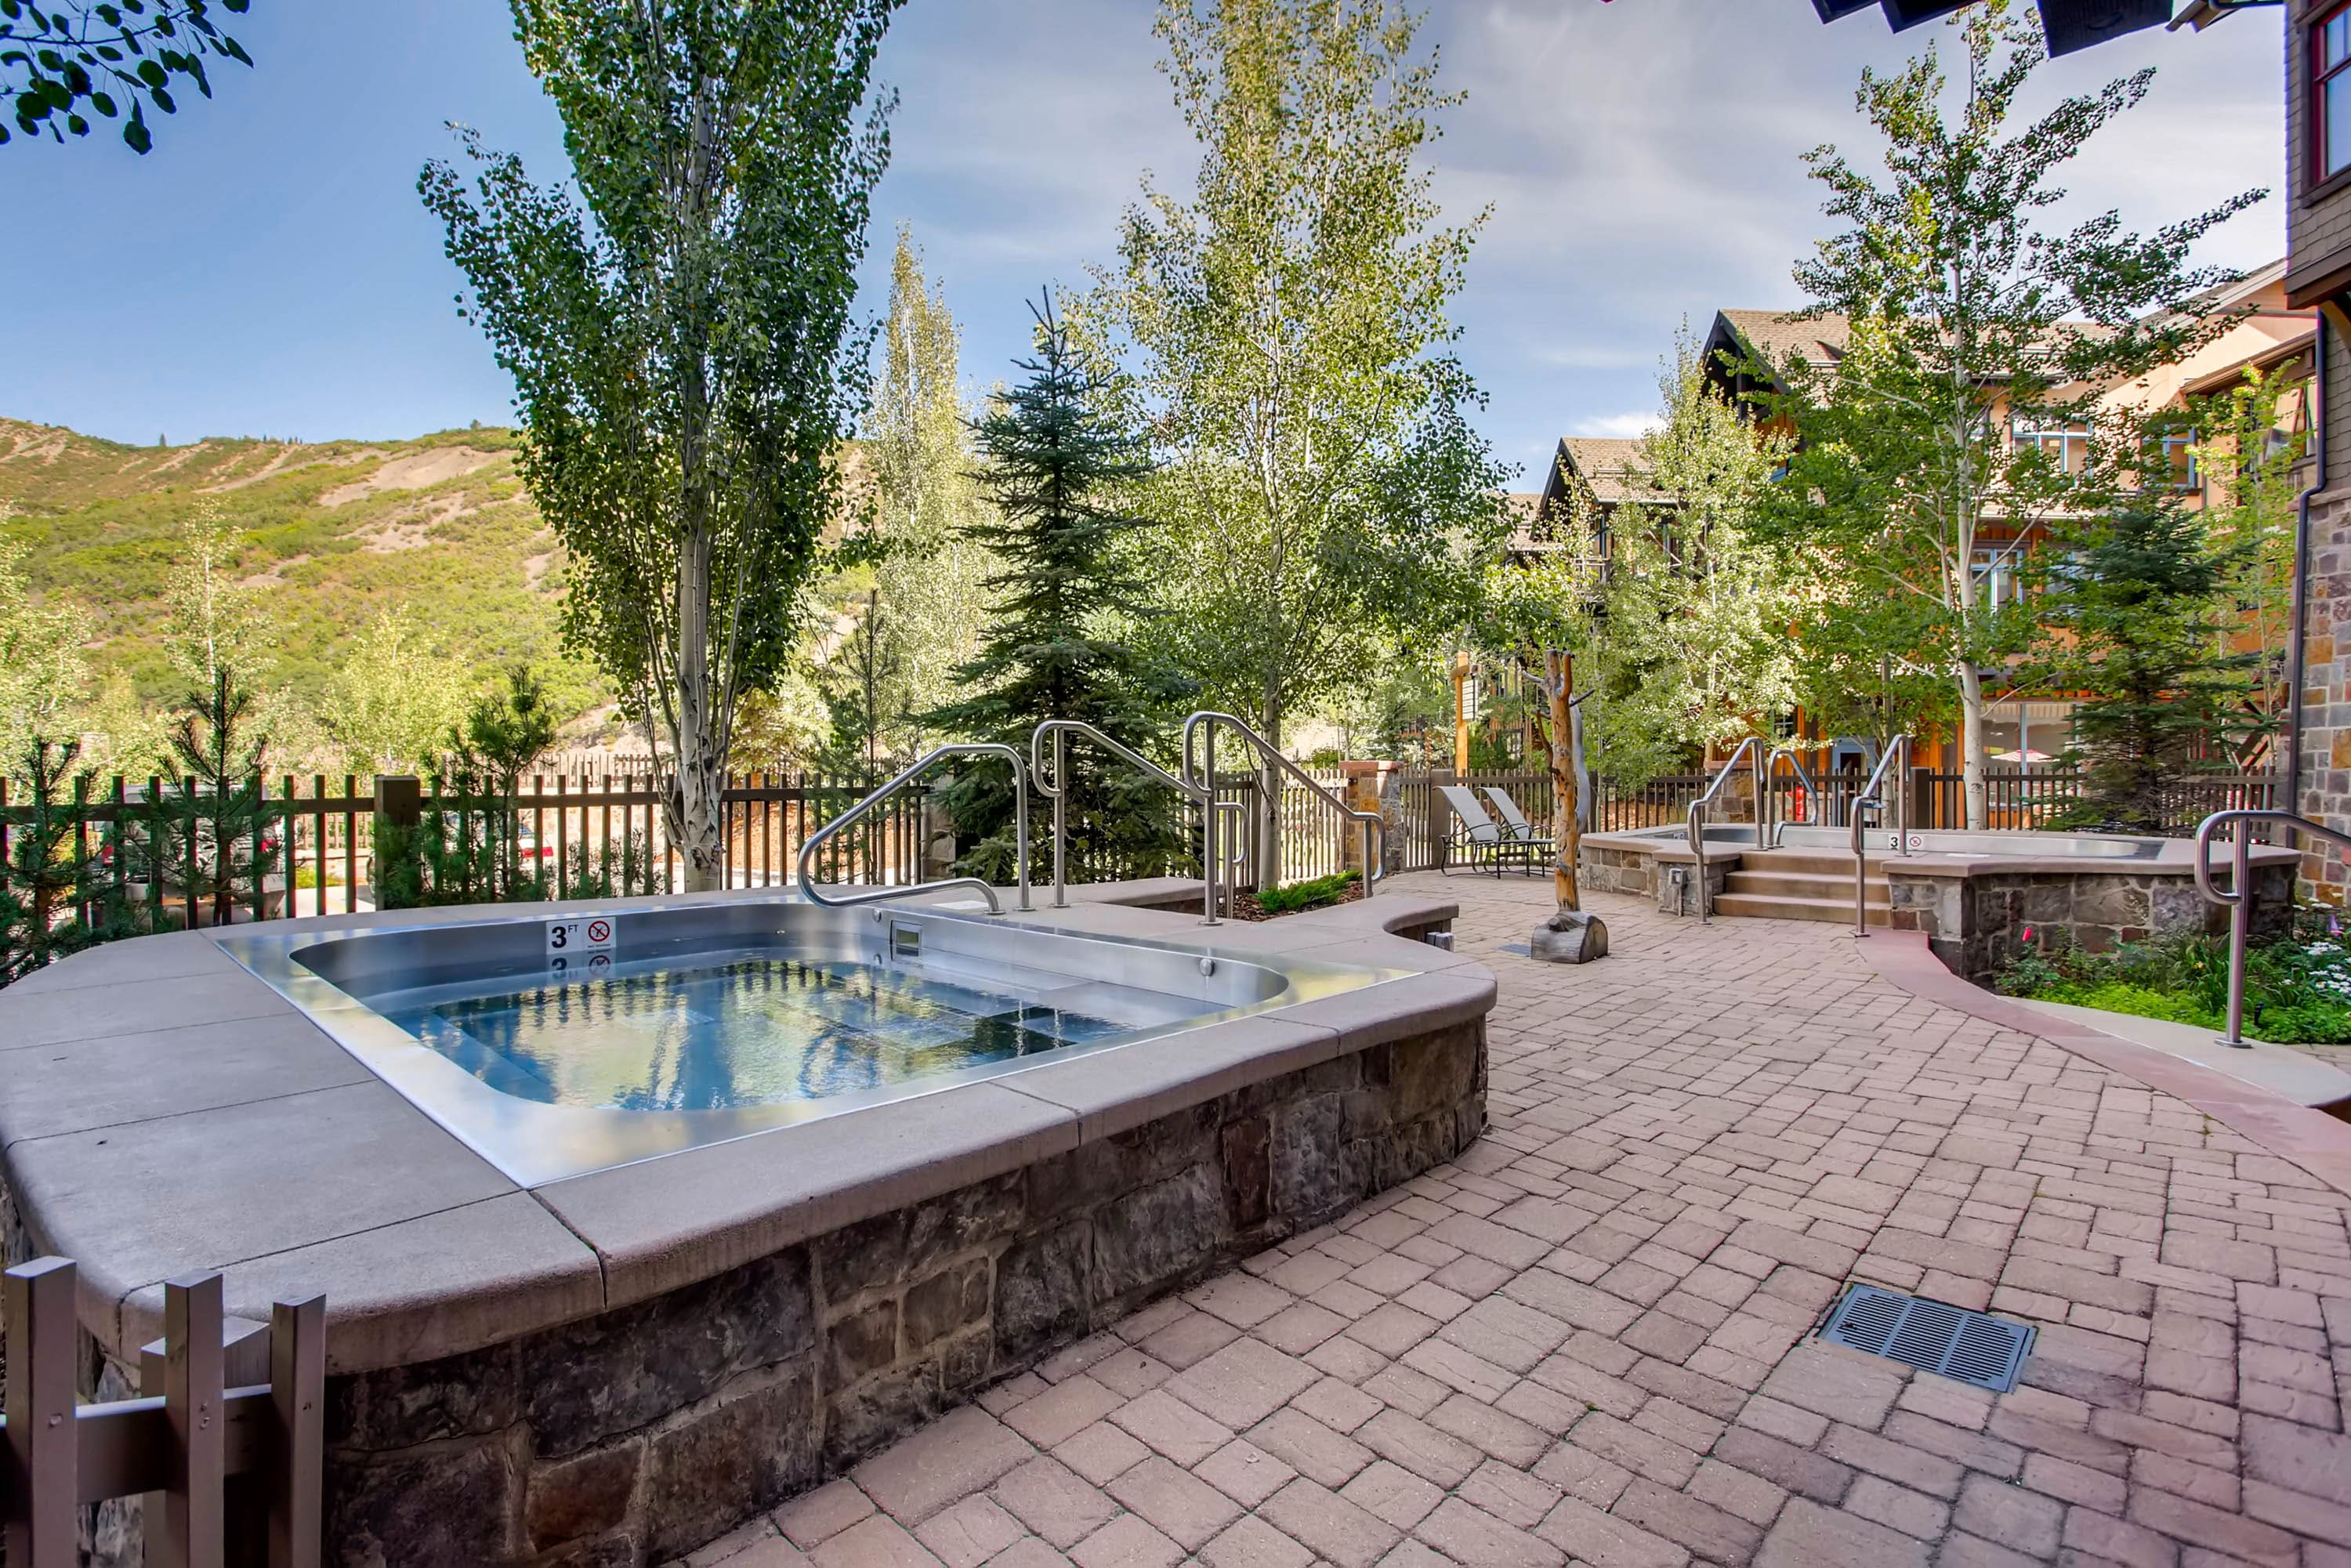 Large 1 bedroom in Capitol Peak Lodge with great location in Snowmass Base Village